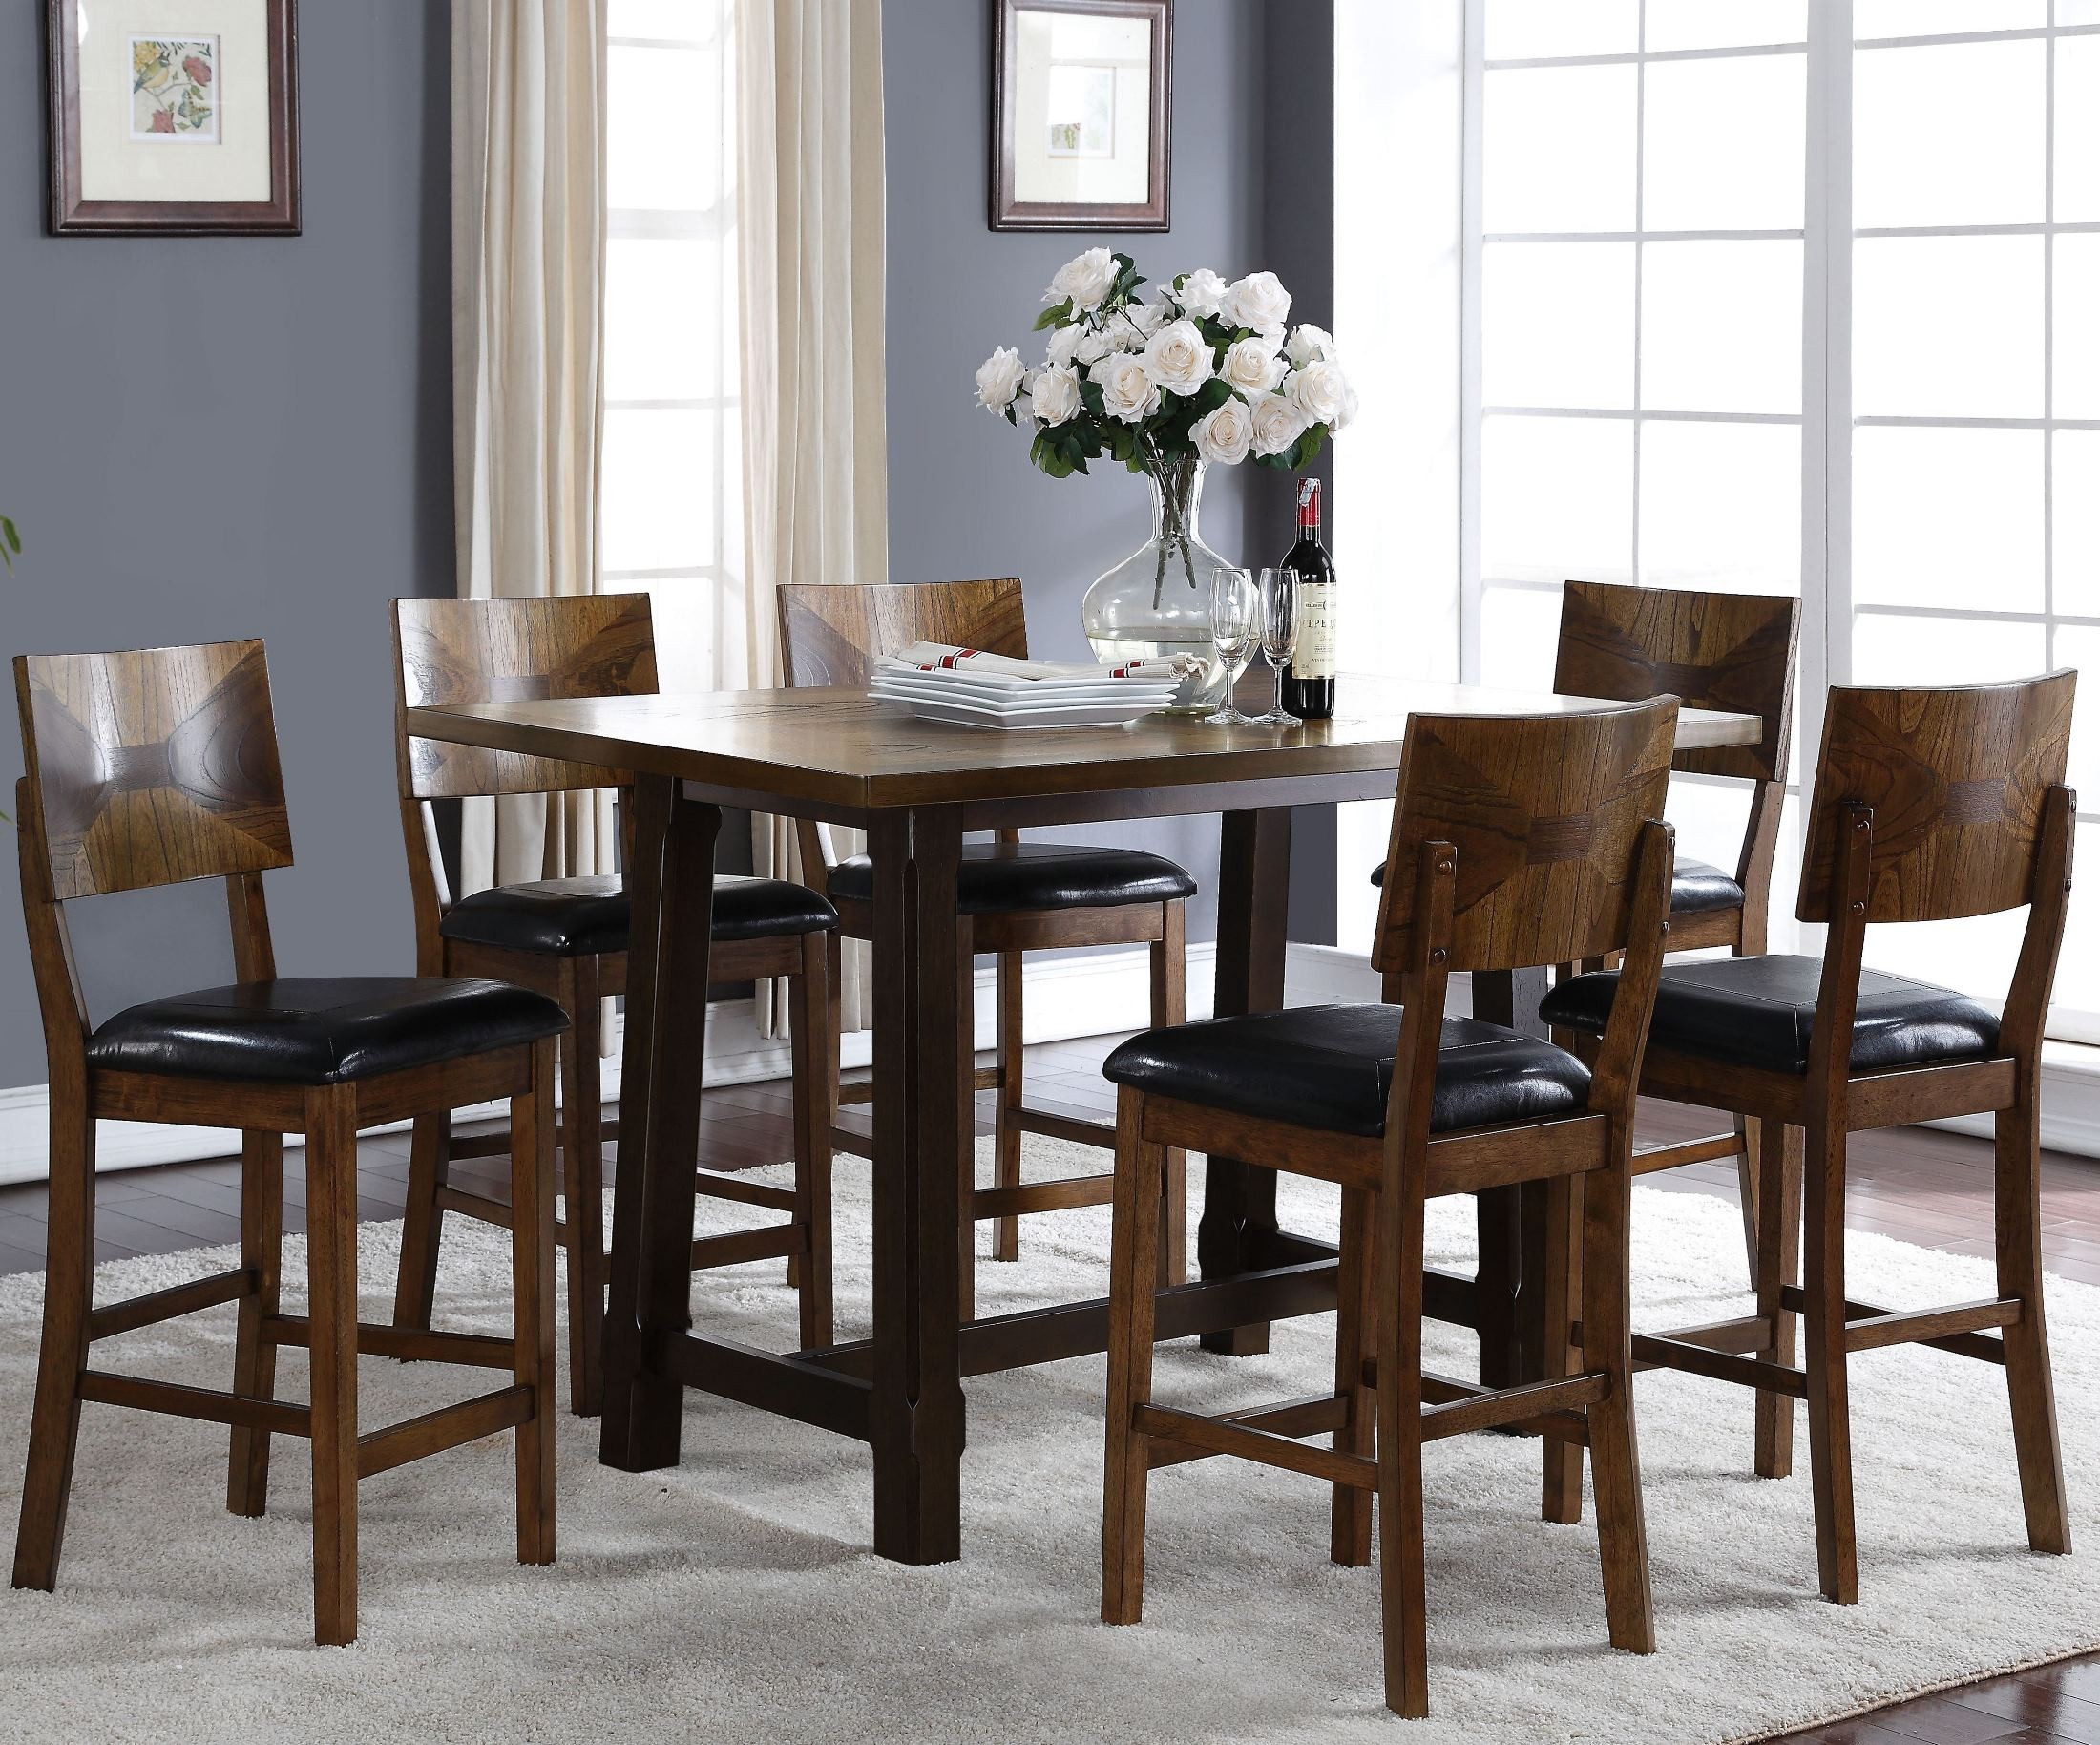 Gillian two tone counter height dining room set d228 12 for Counter height dining room sets